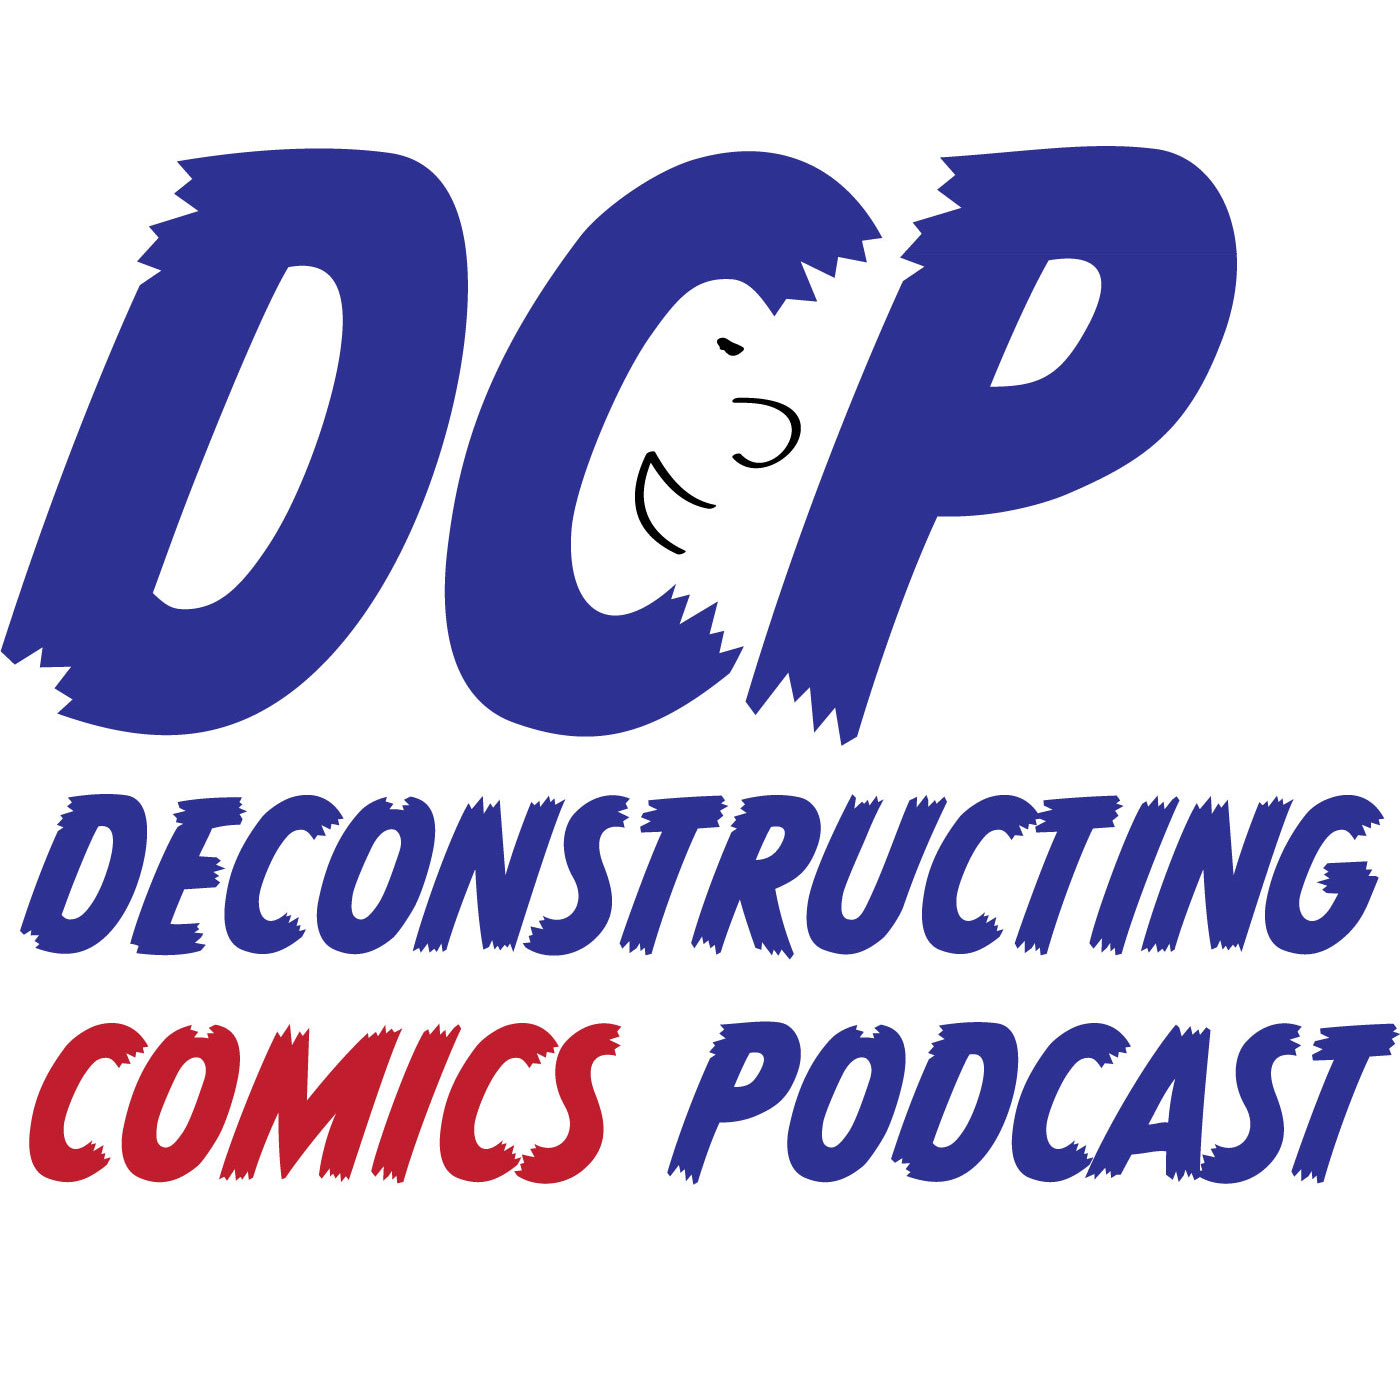 – Deconstructing Comics